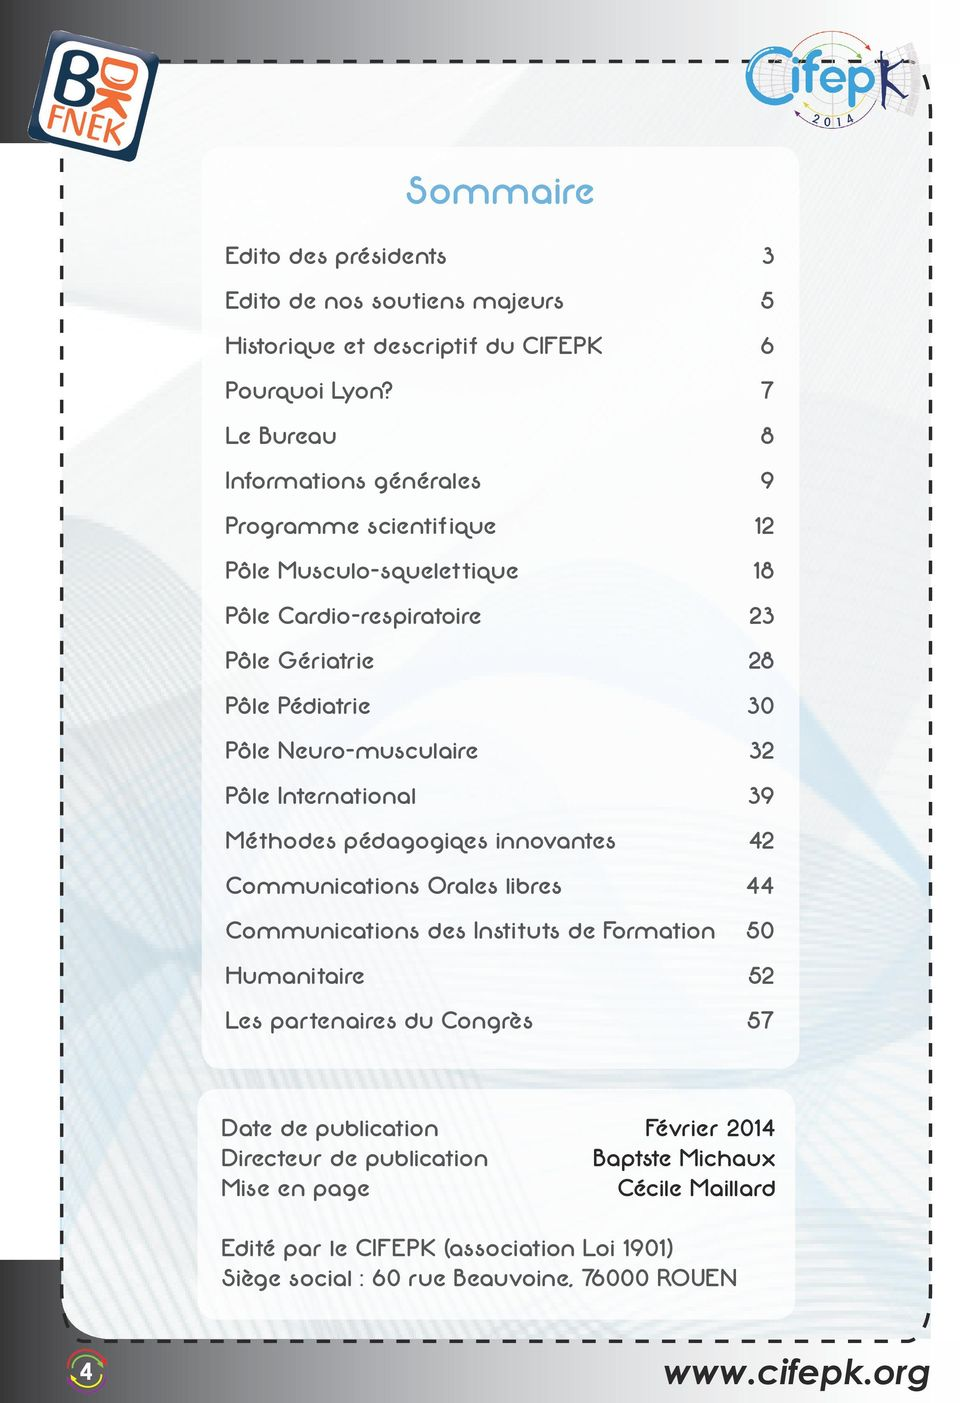 Neuro-musculaire 32 Pôle International 39 Méthodes pédagogiqes innovantes 42 Communications Orales libres 44 Communications des Instituts de Formation 50 Humanitaire 52